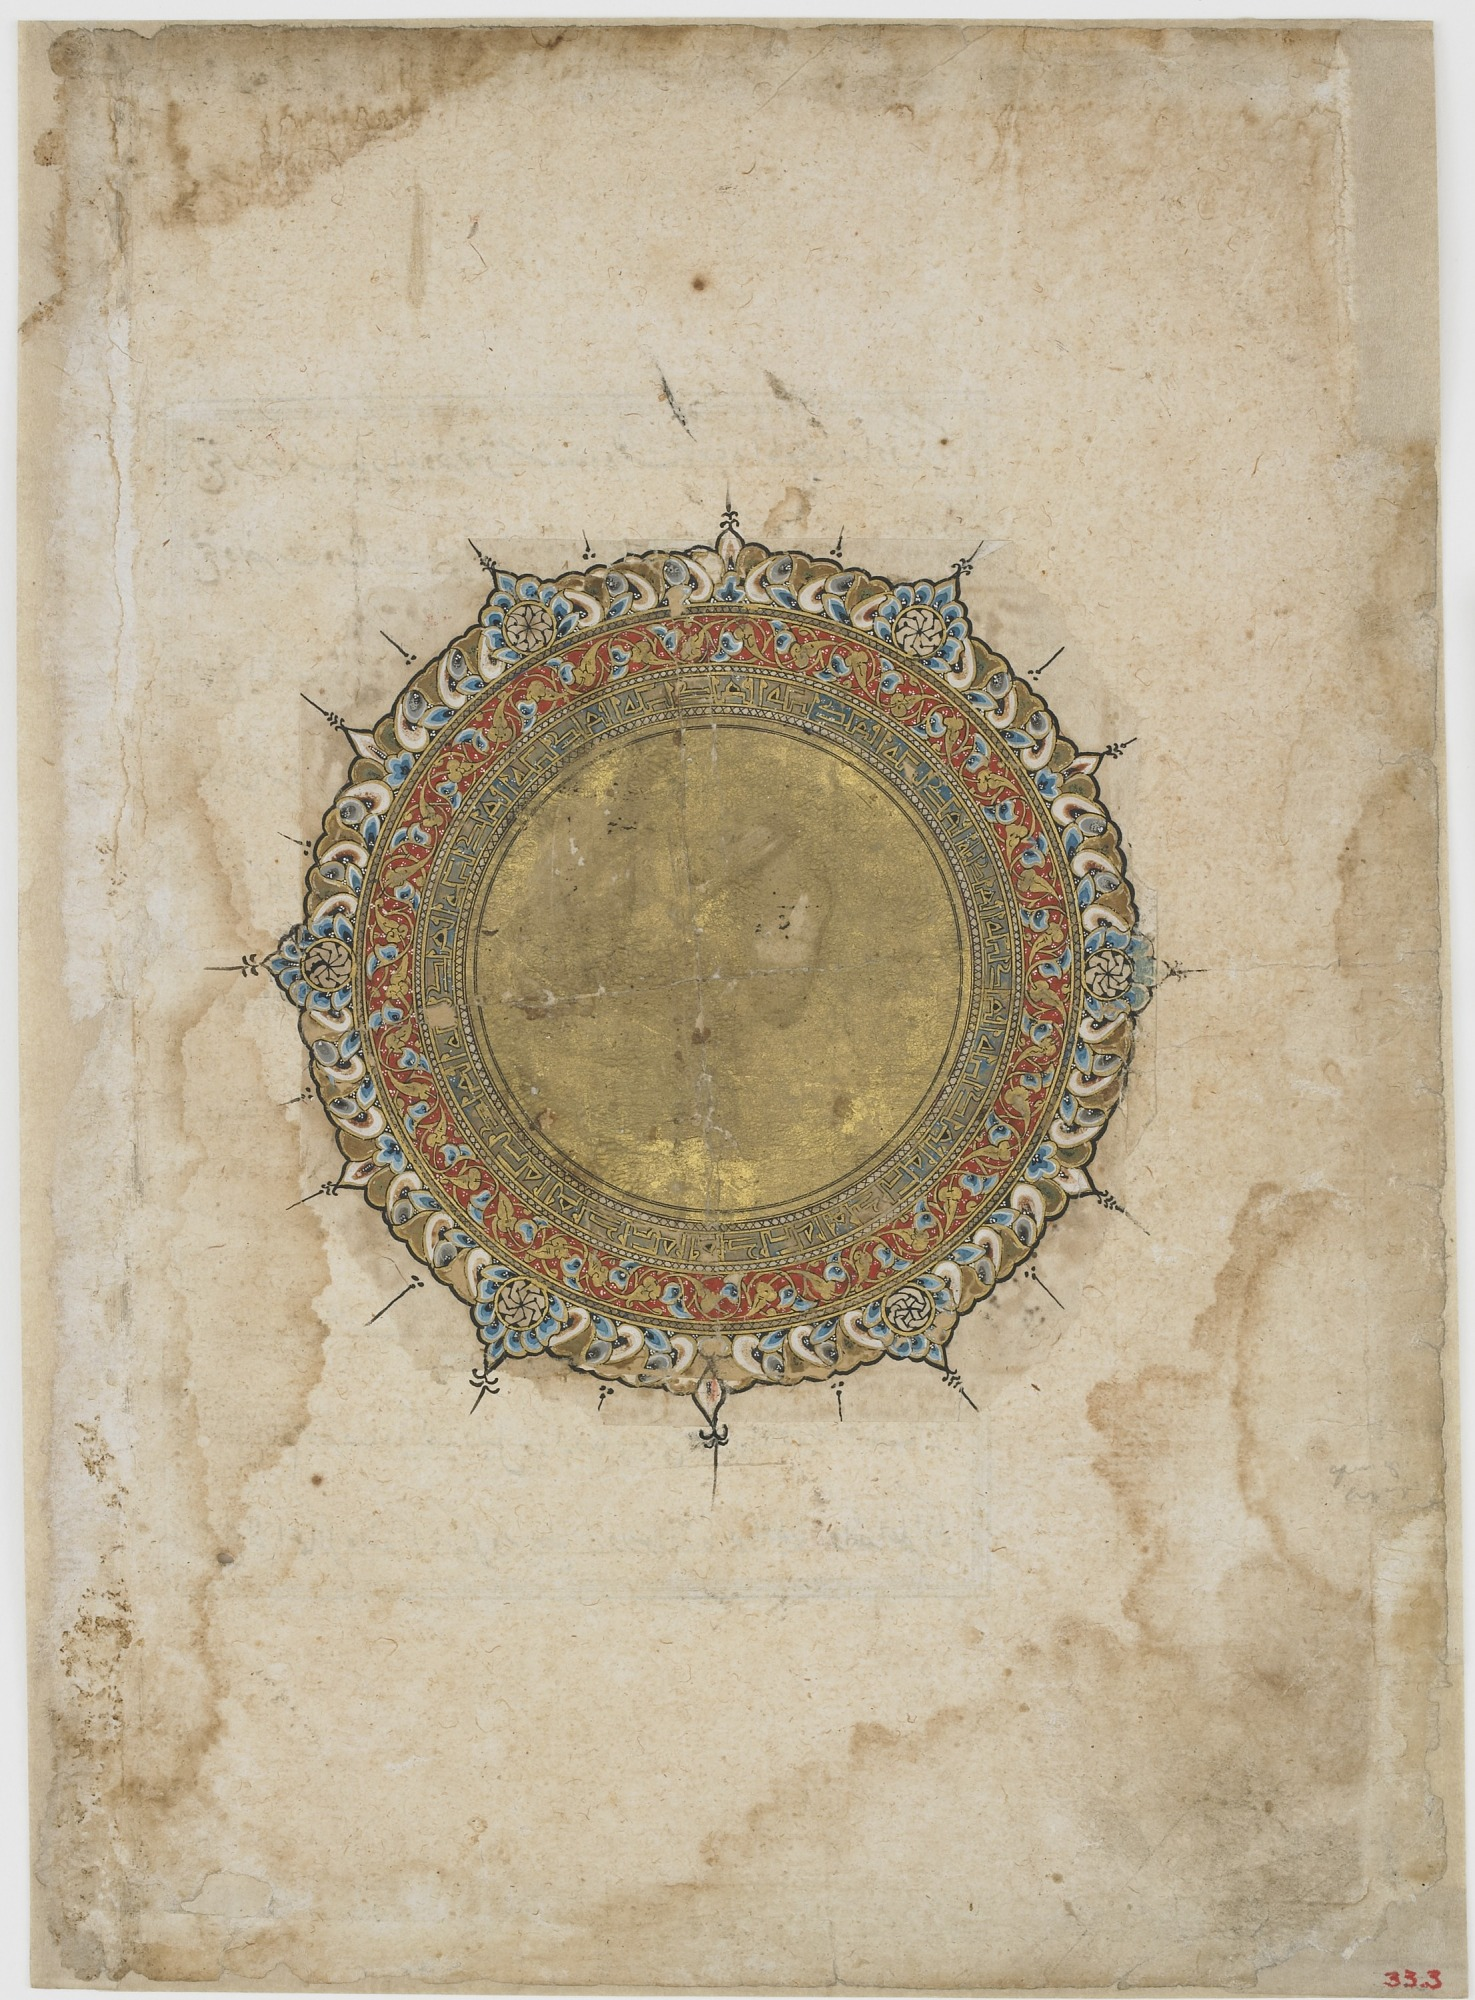 Folio from an unidentified text; recto: text; verso: illuminated medallion with two ornamental borders